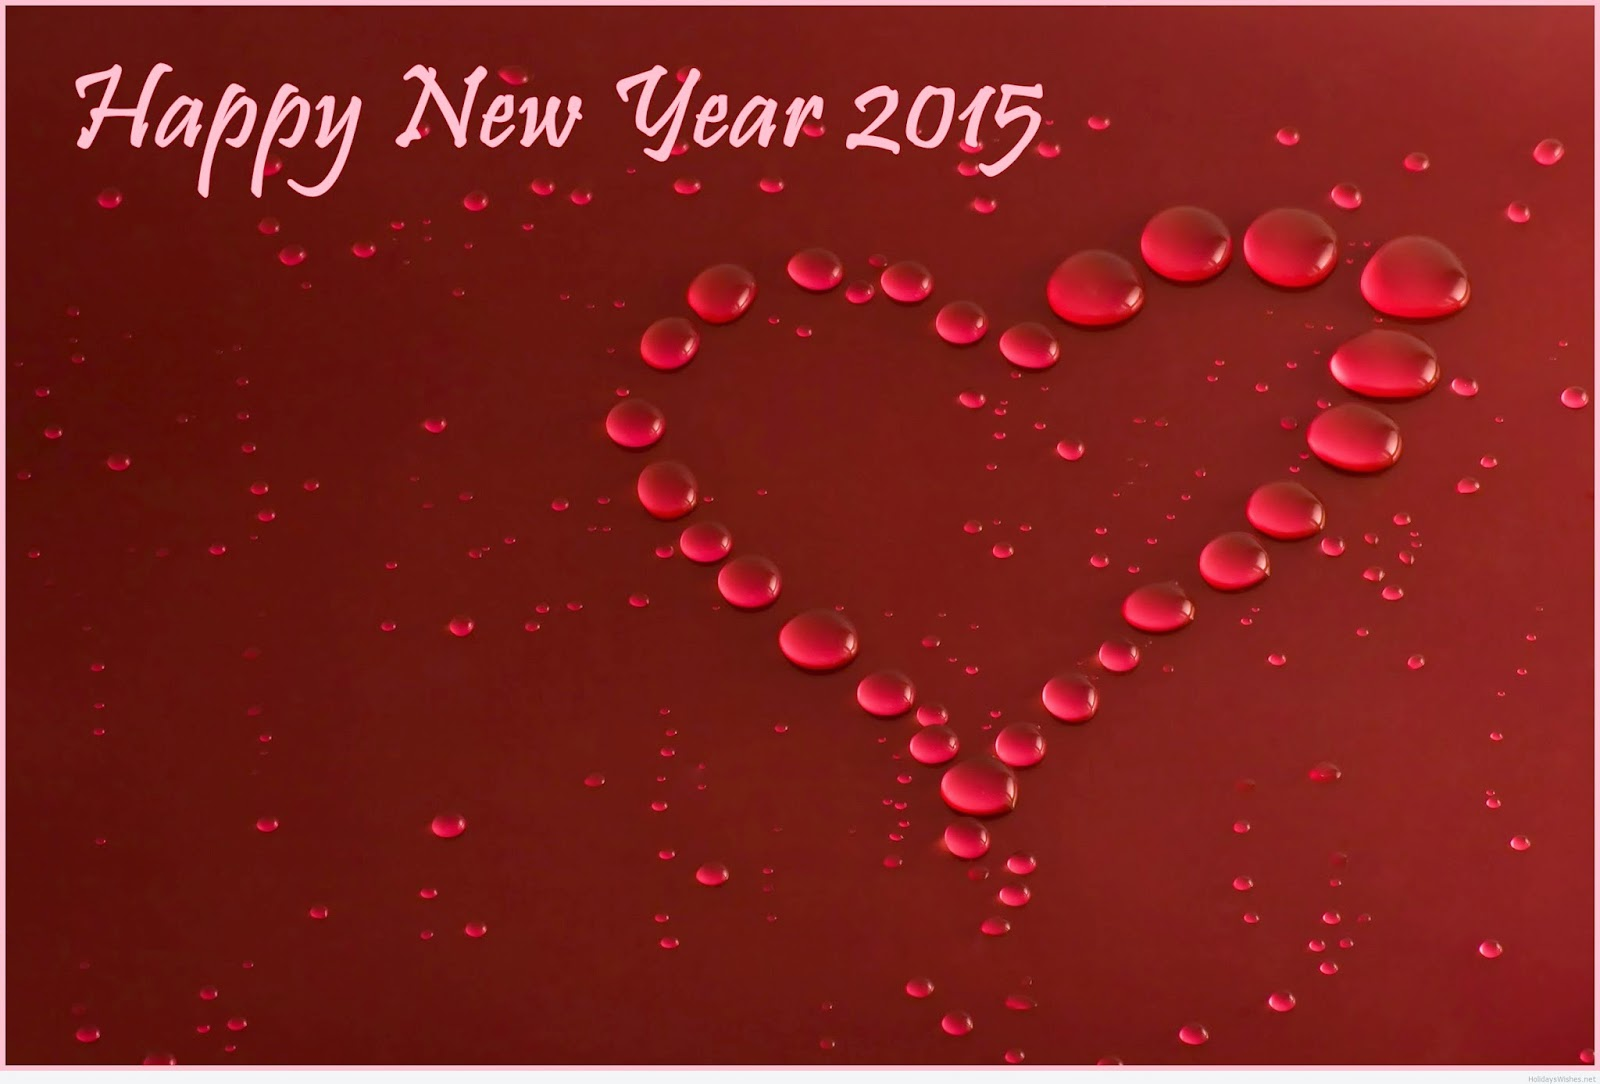 Happy New Year 2015 - Stylish Wallpapers